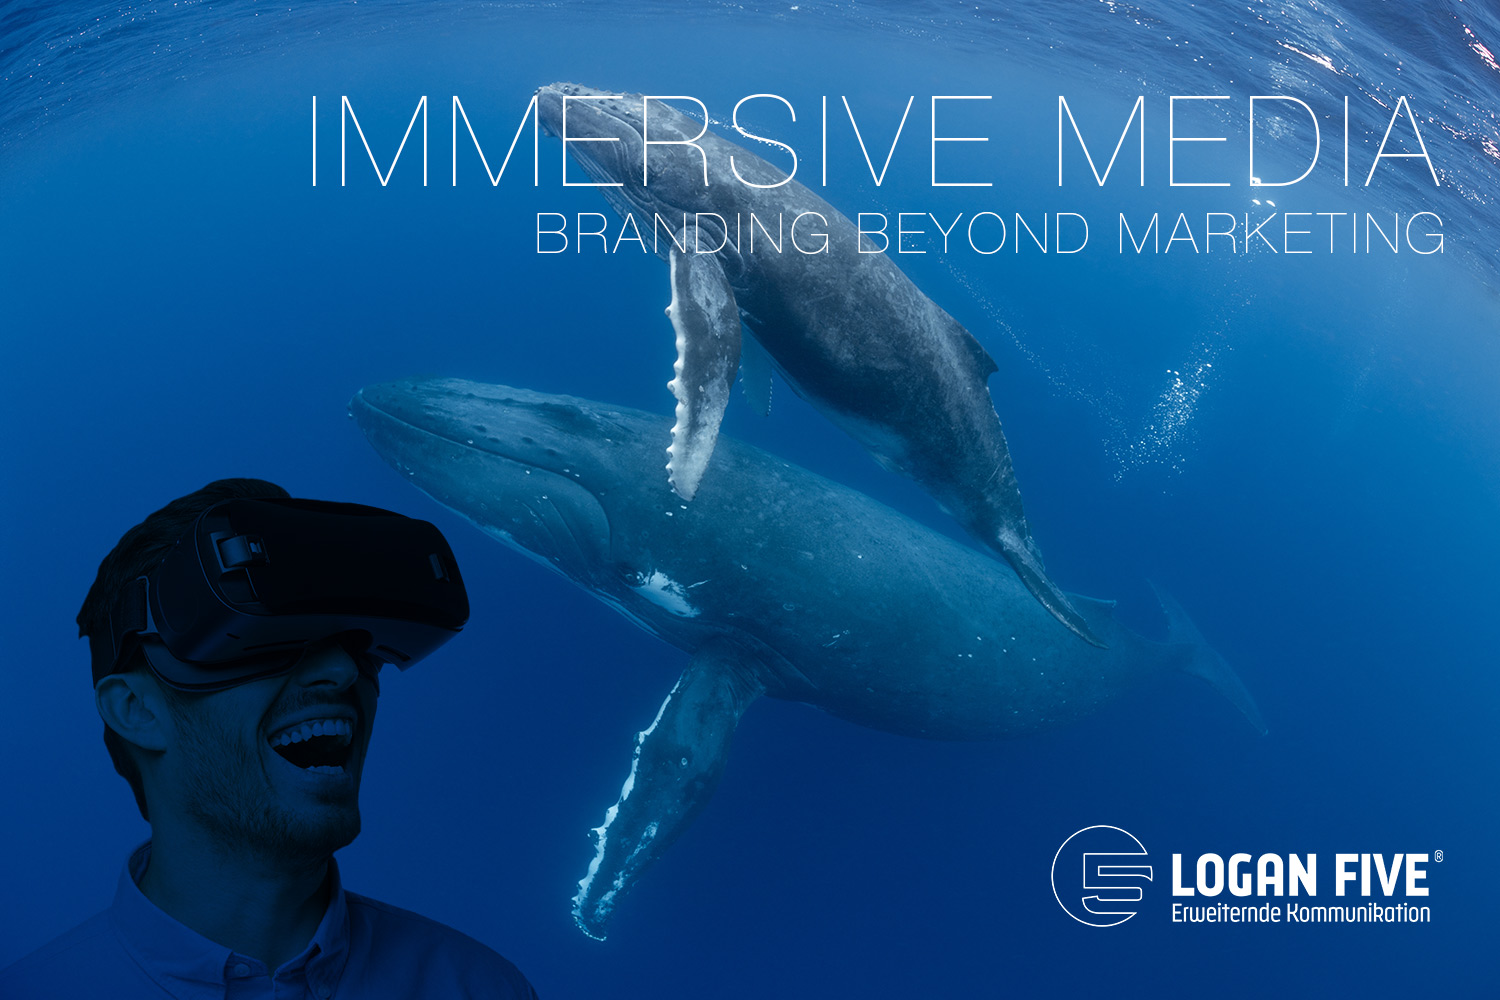 Immersive Media by Logan Five